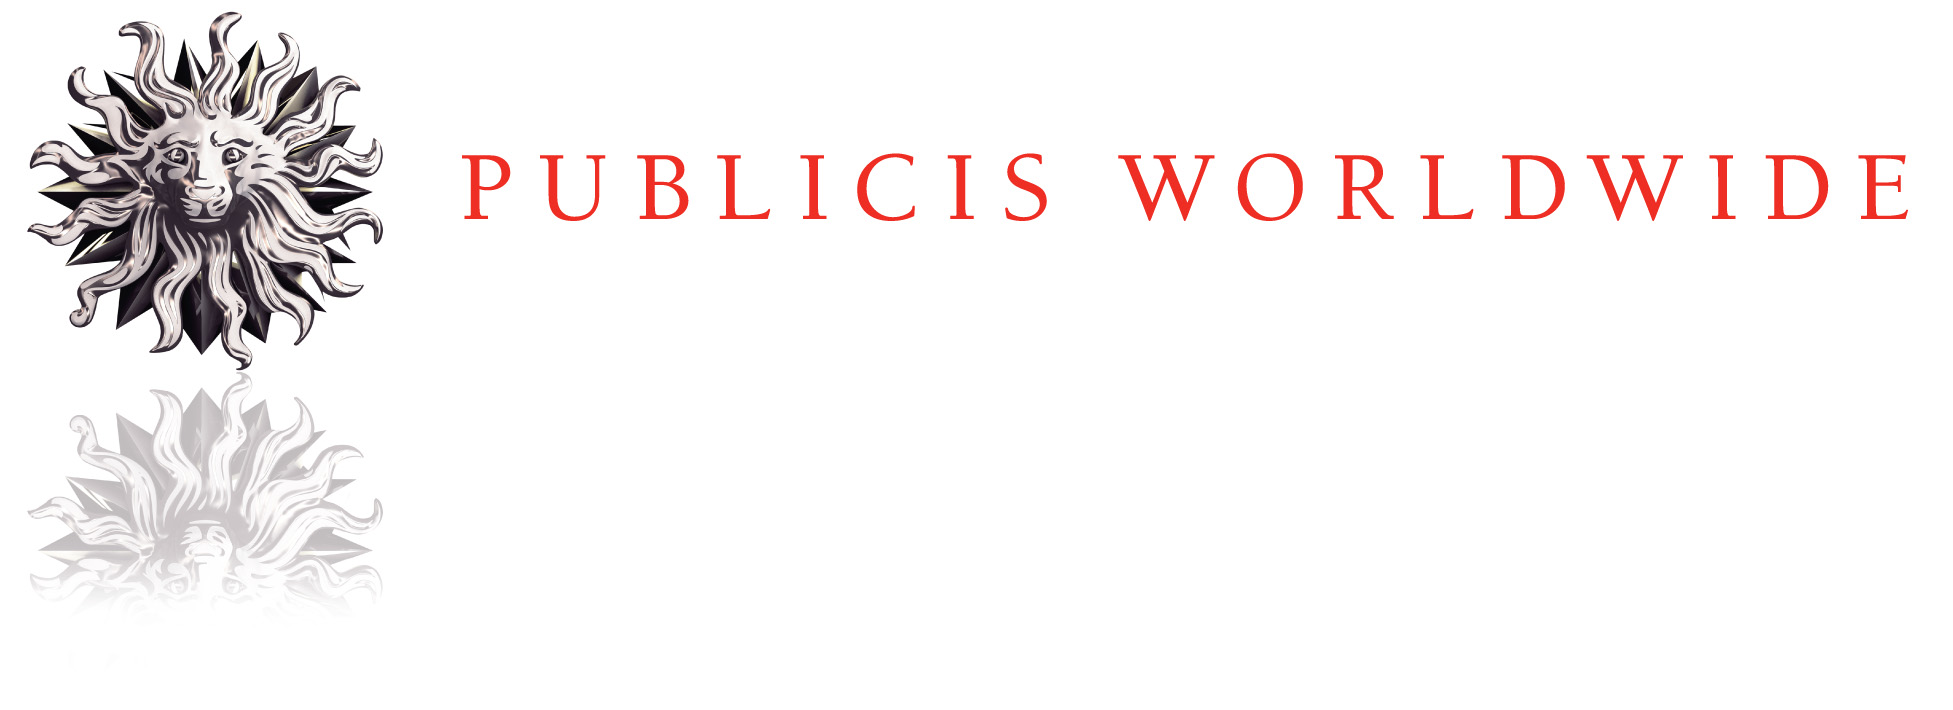 The old Publicis Worldwide logo.